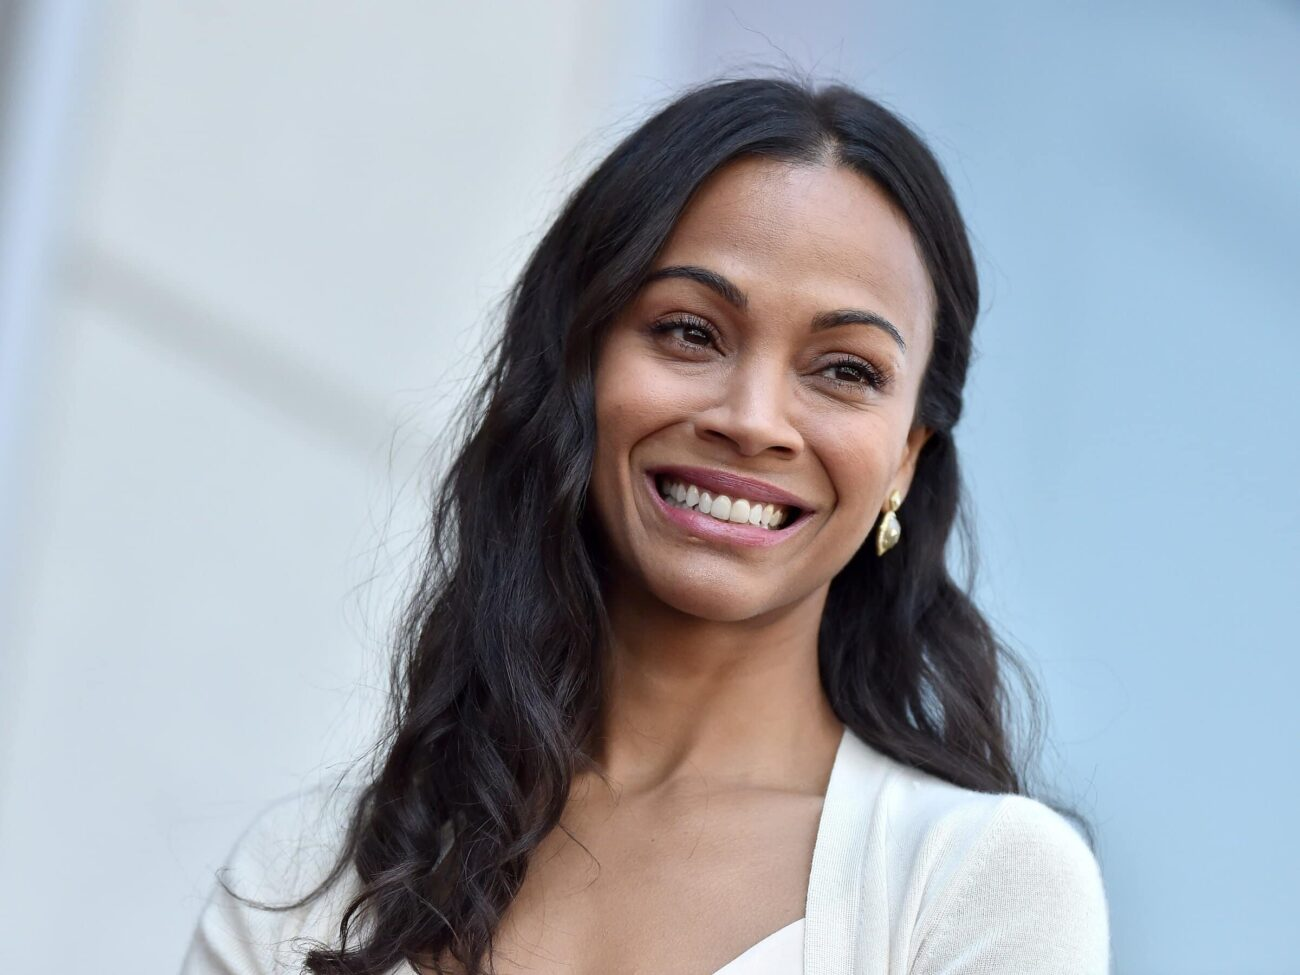 The future is looking bright for Netflix movies with Zoe Saldana.But when can we start marking our calendars? Join us as we visit the months to come!